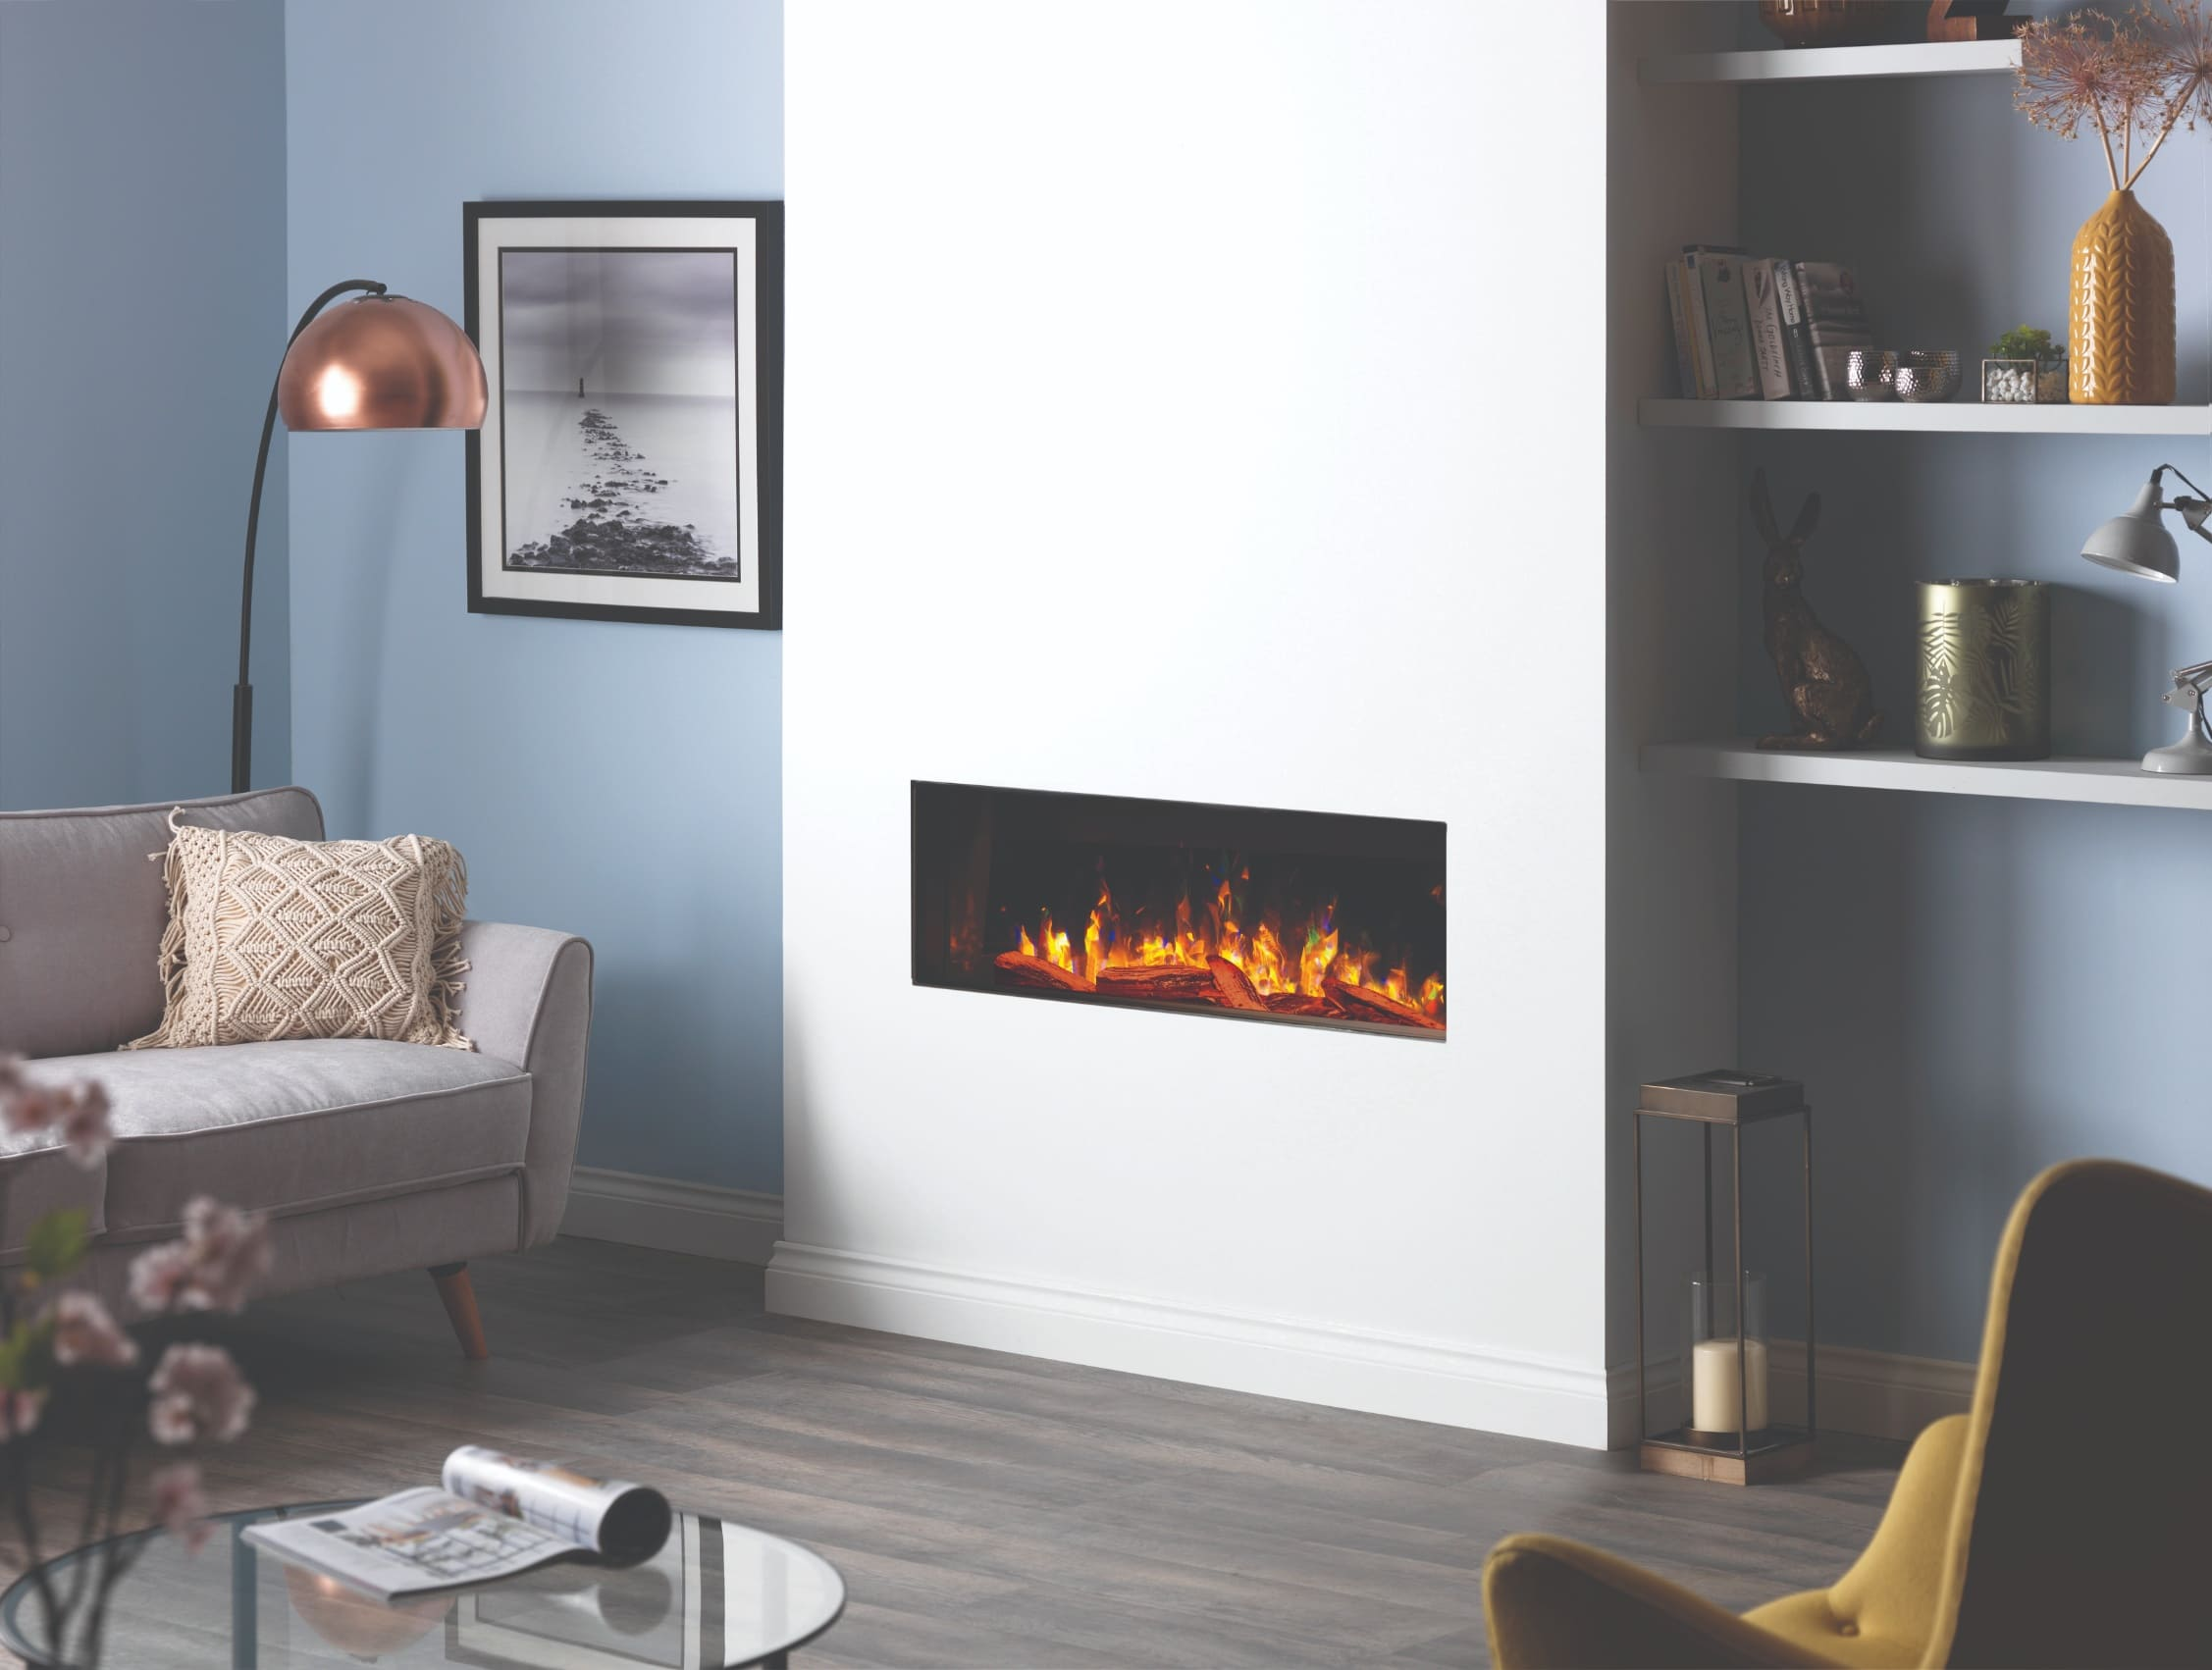 SLE100 Deep Hole in the Wall Electric Fire Front Facing Log Burner Effect